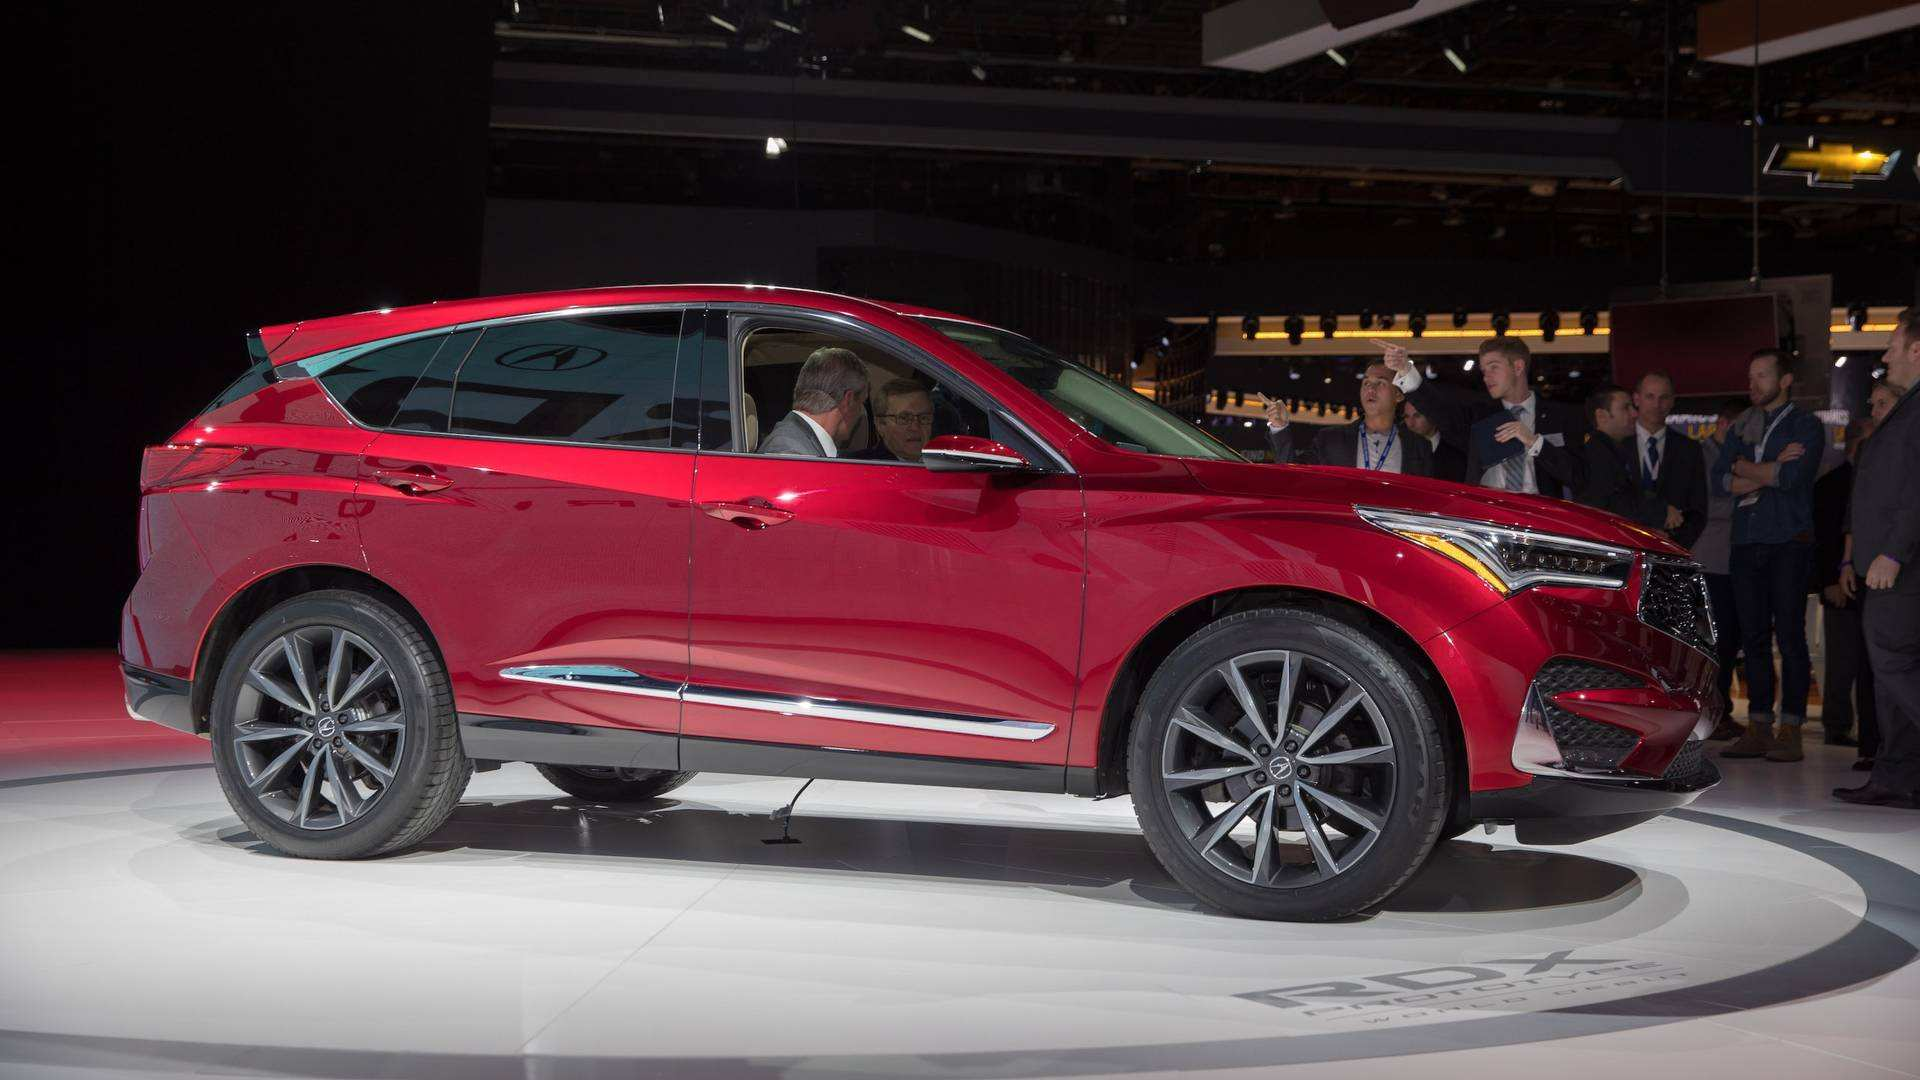 65 The Best 2019 Acura RDX Picture